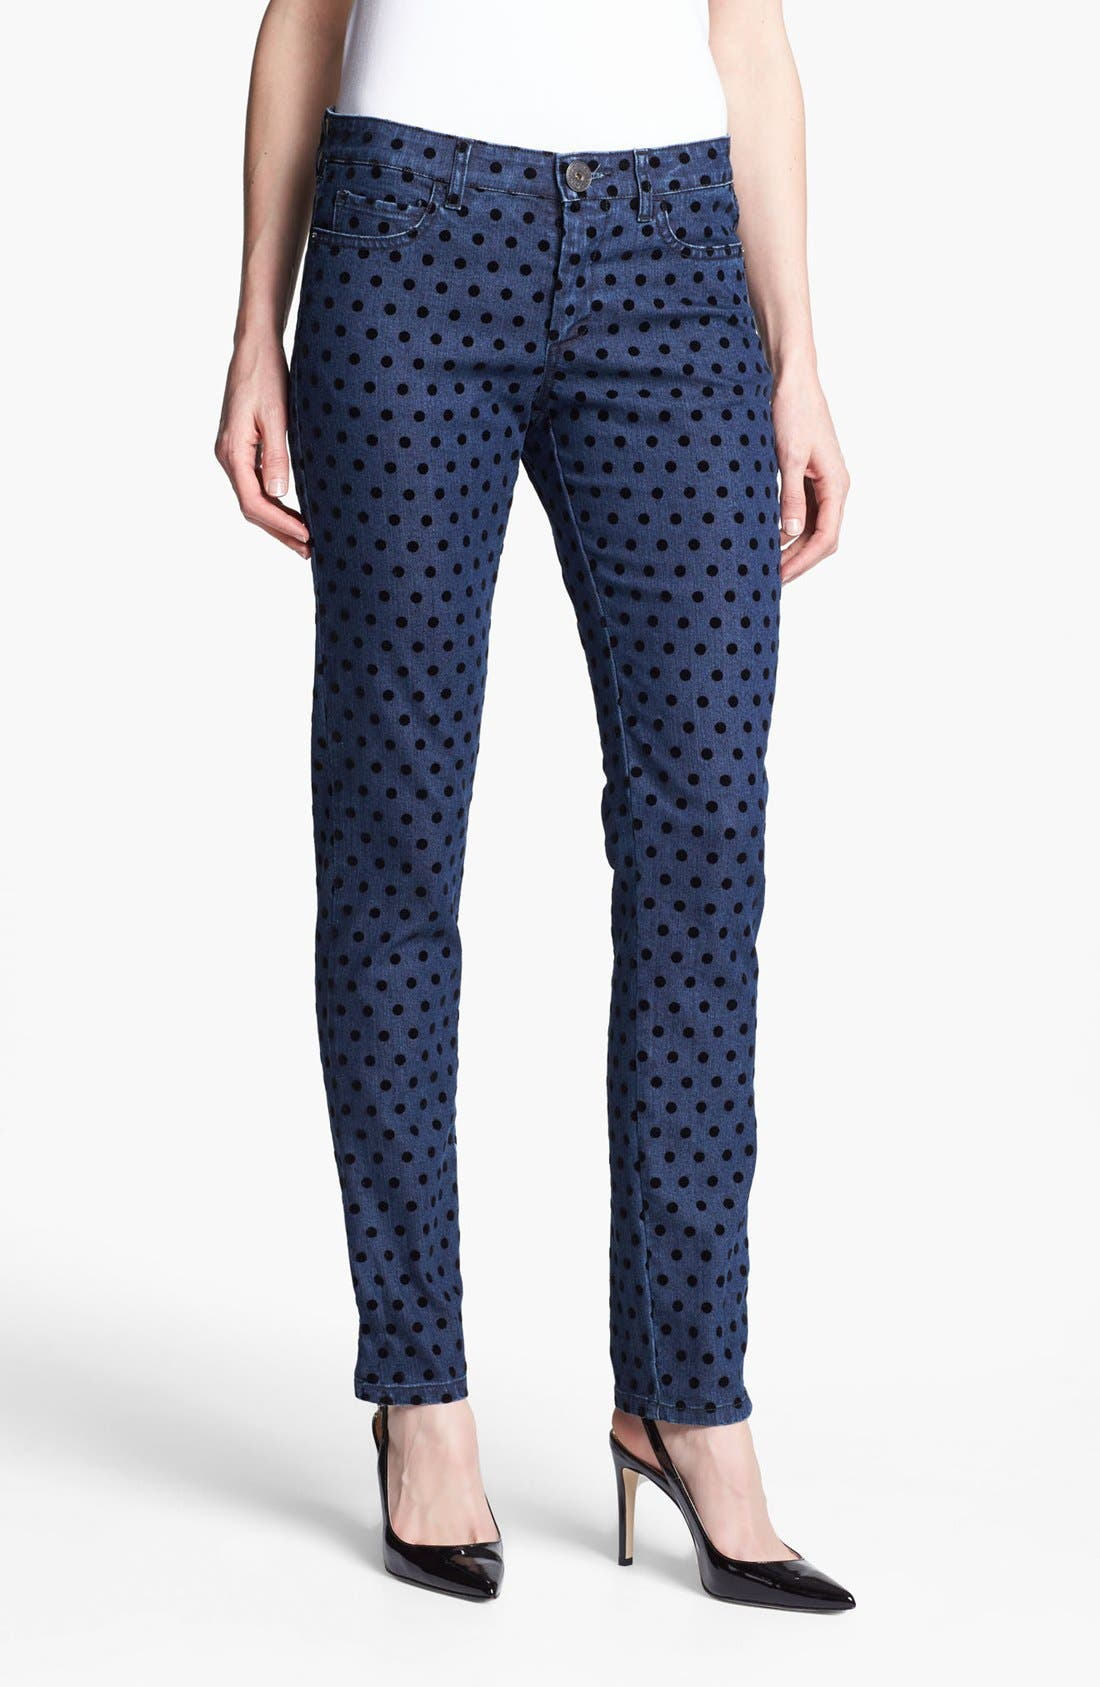 Main Image - Weekend Max Mara 'Cirella' Flocked Dot Jeans